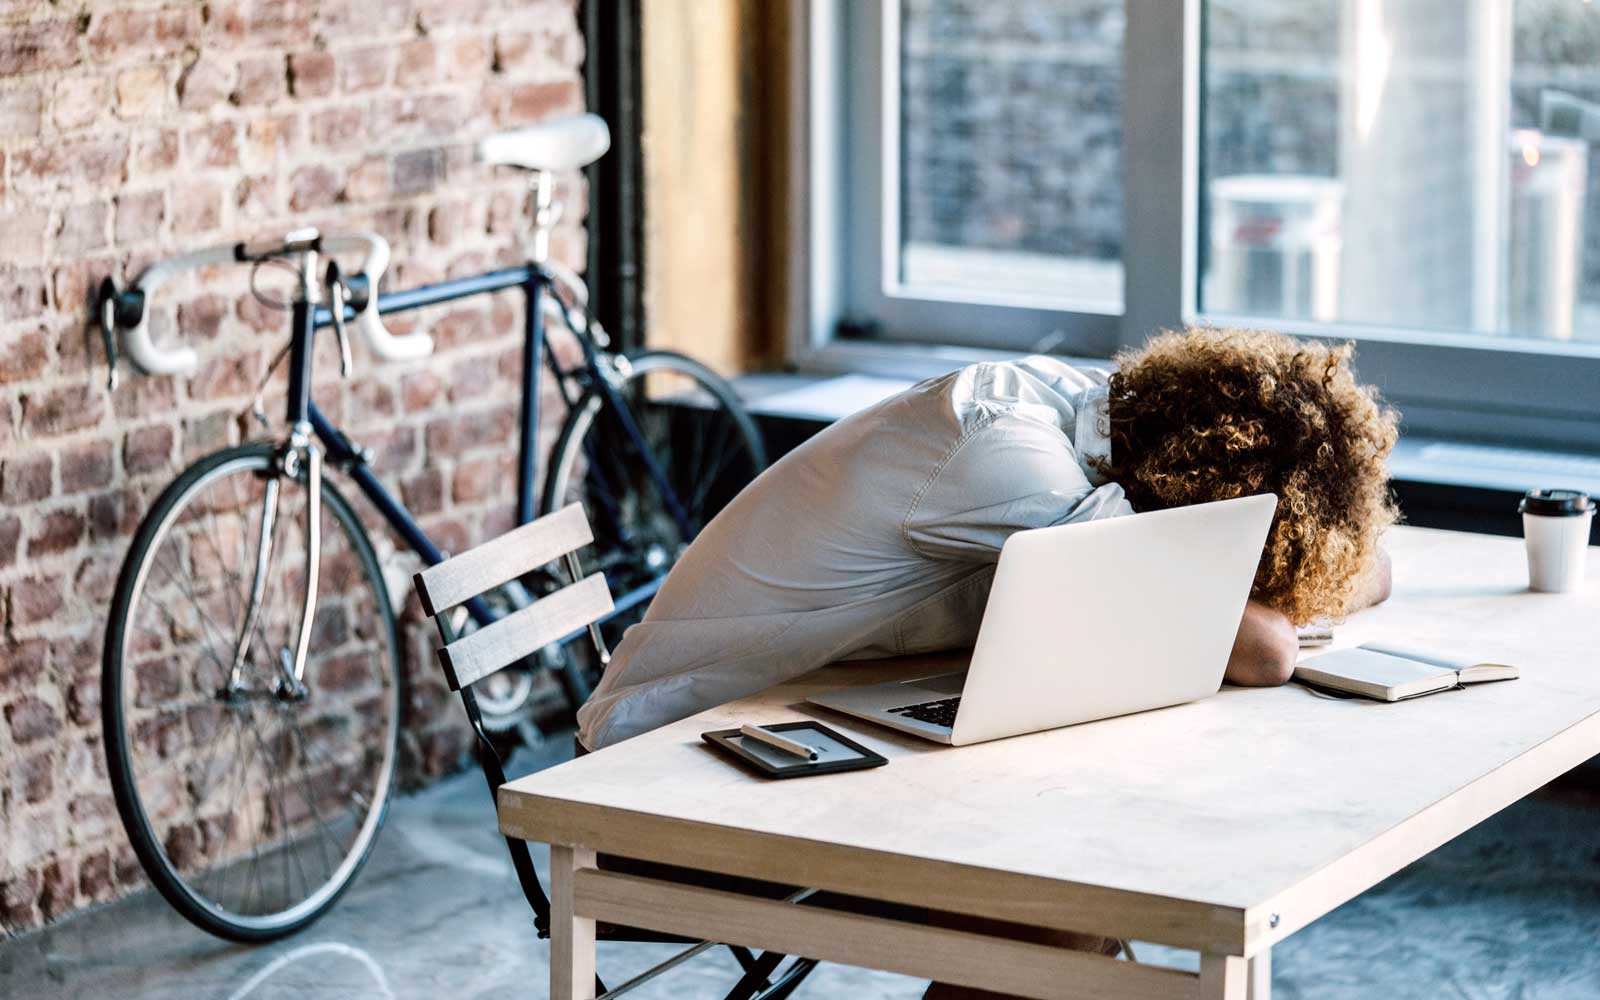 Person laying on desk, exhausted and working